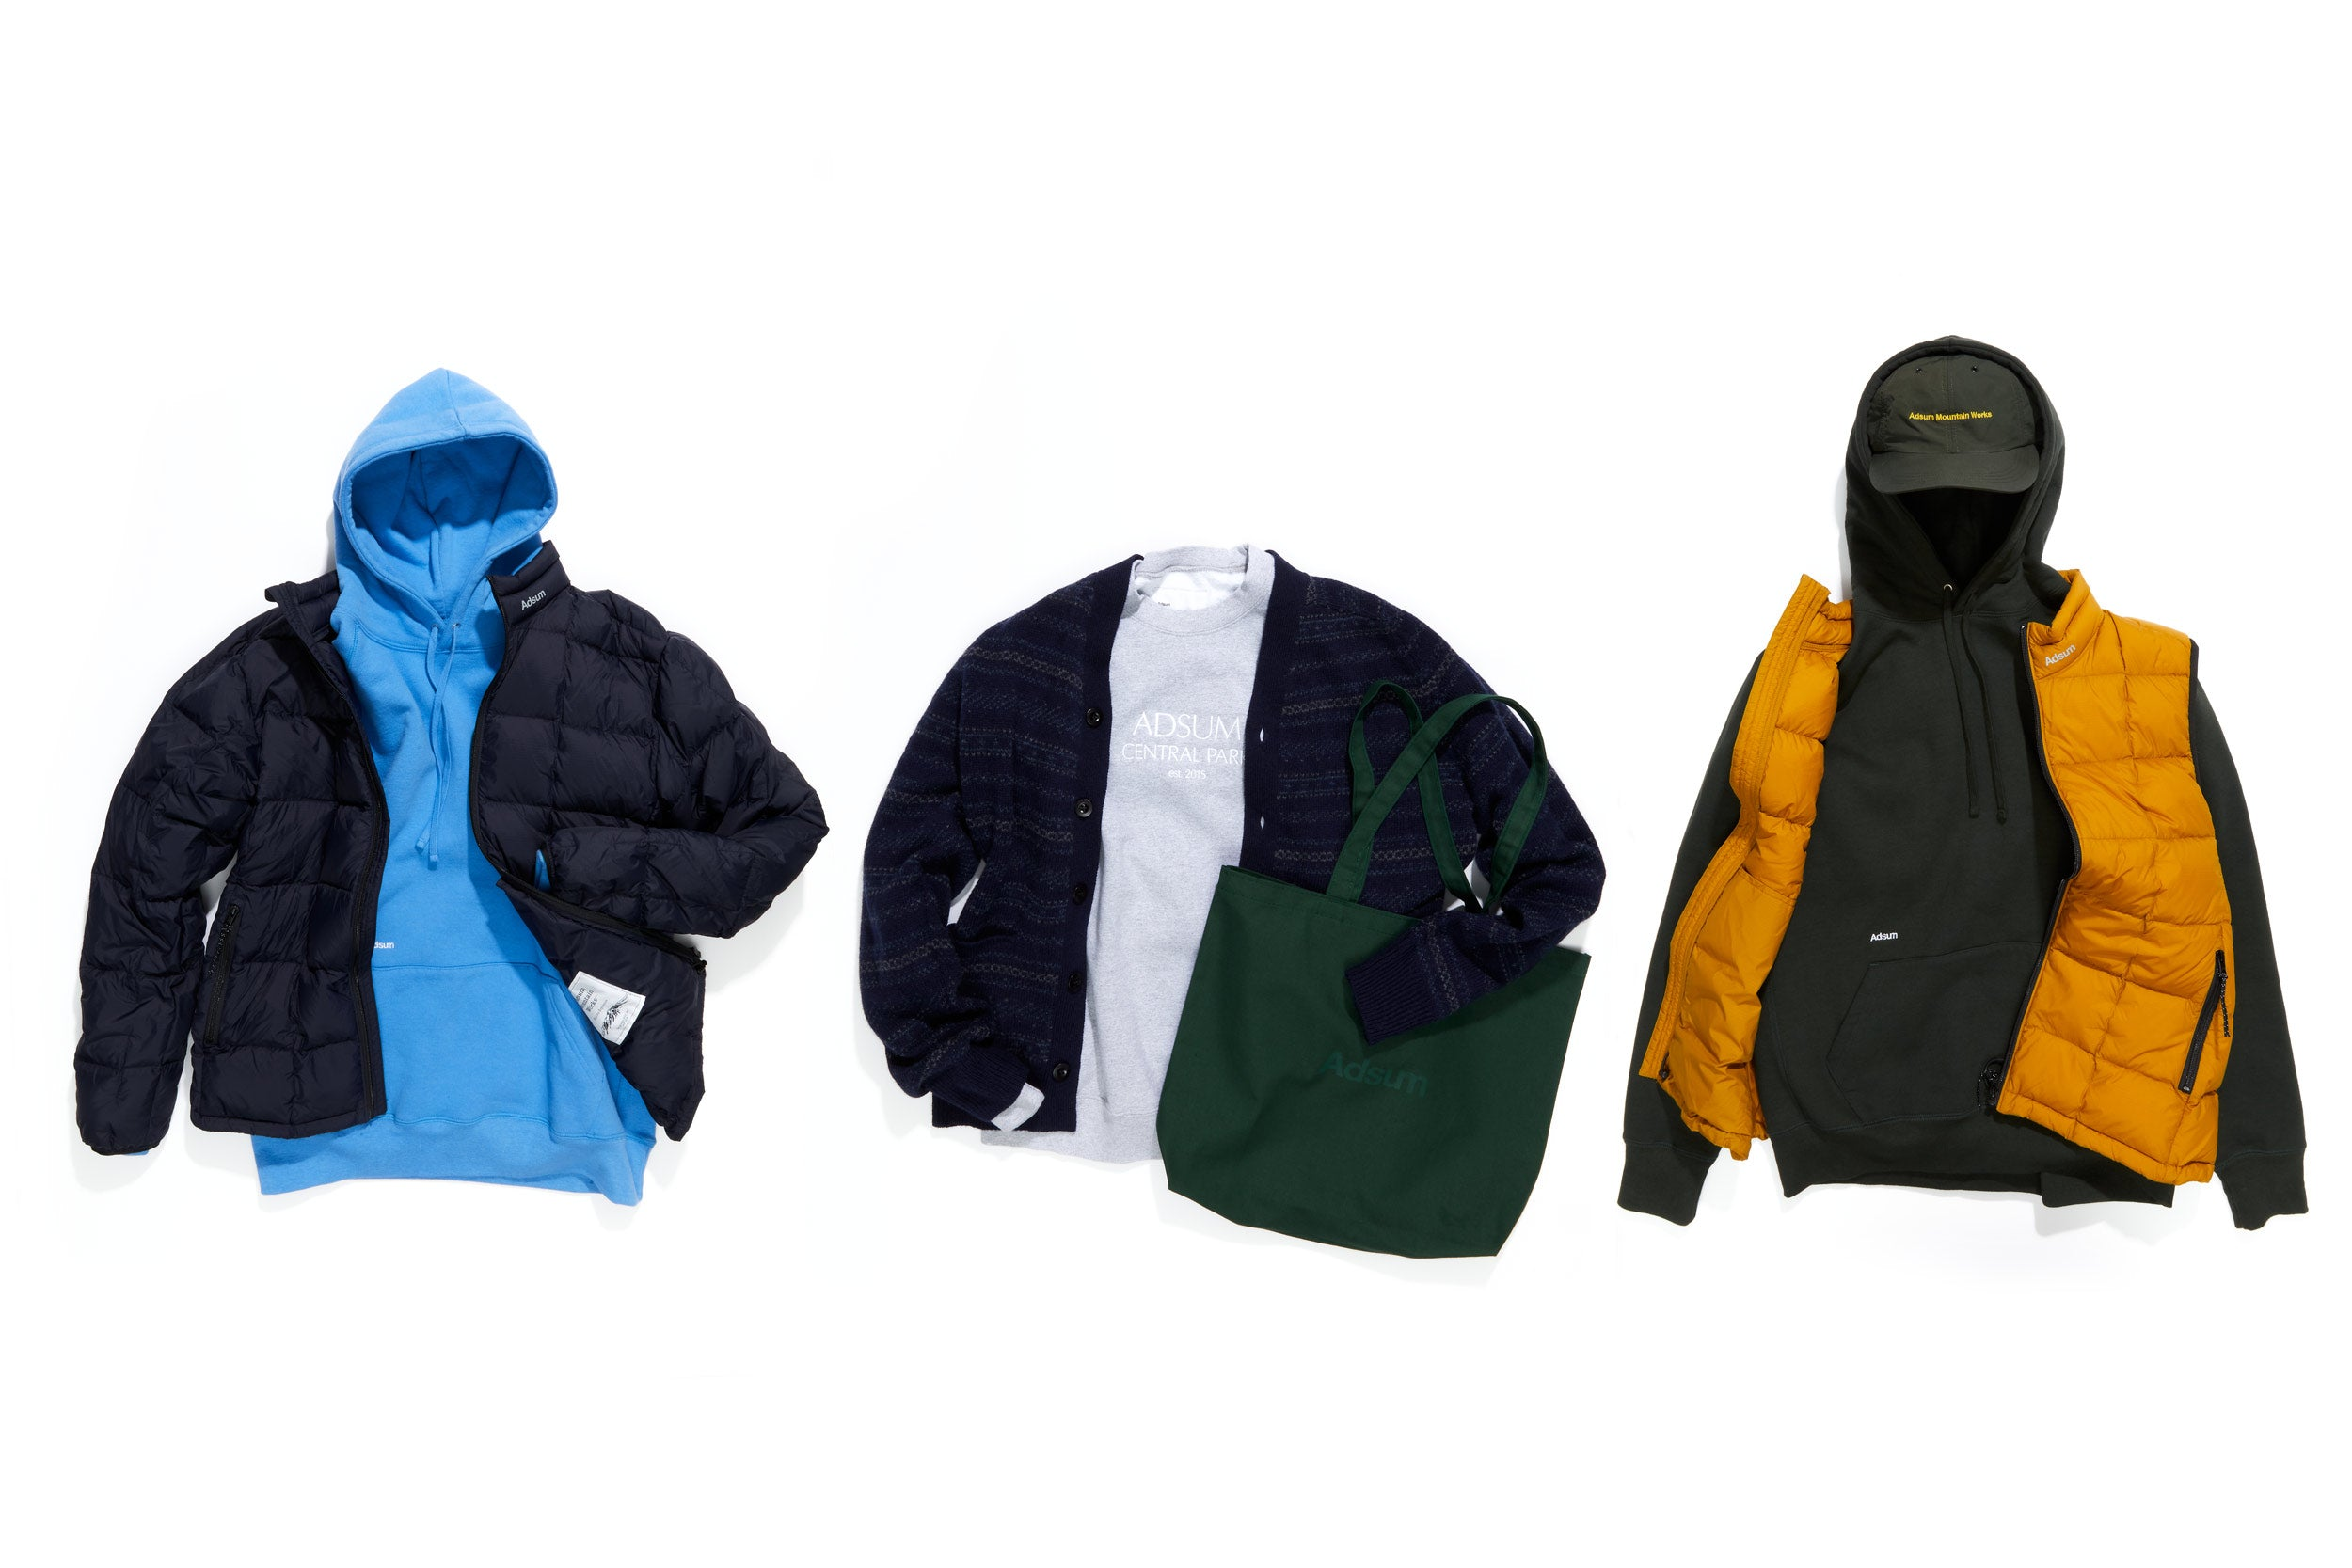 Sweat Tops and Outerwear